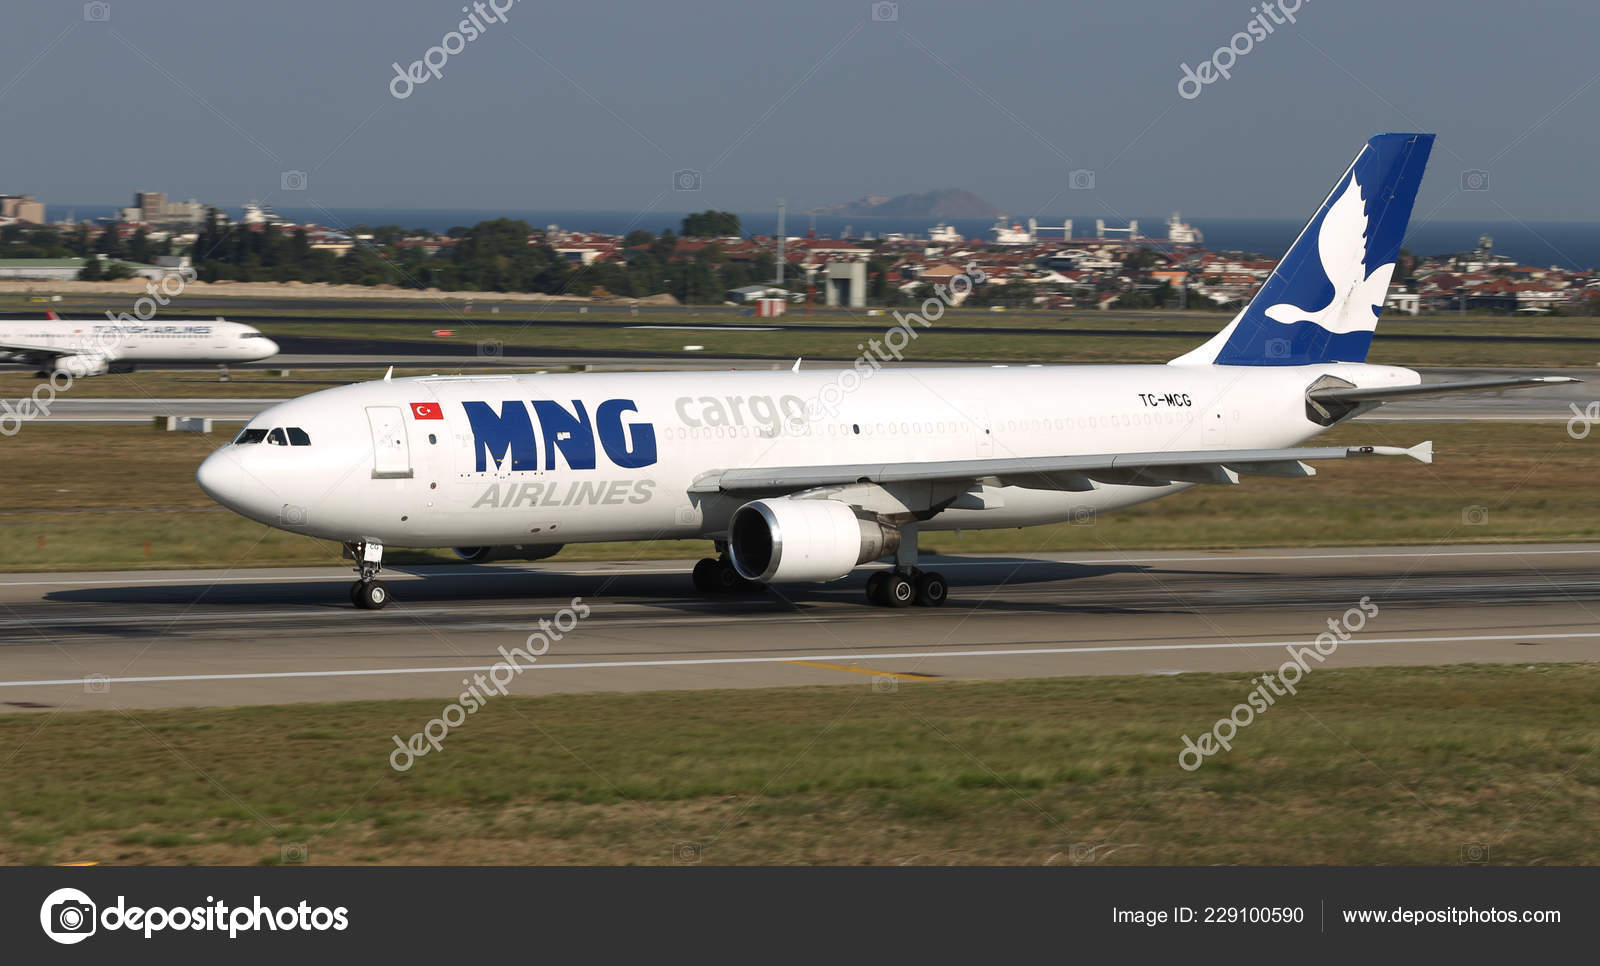 Istanbul Turkey August 2018 Mng Airlines Airbus A300 605Rf 739 — Stock Photo